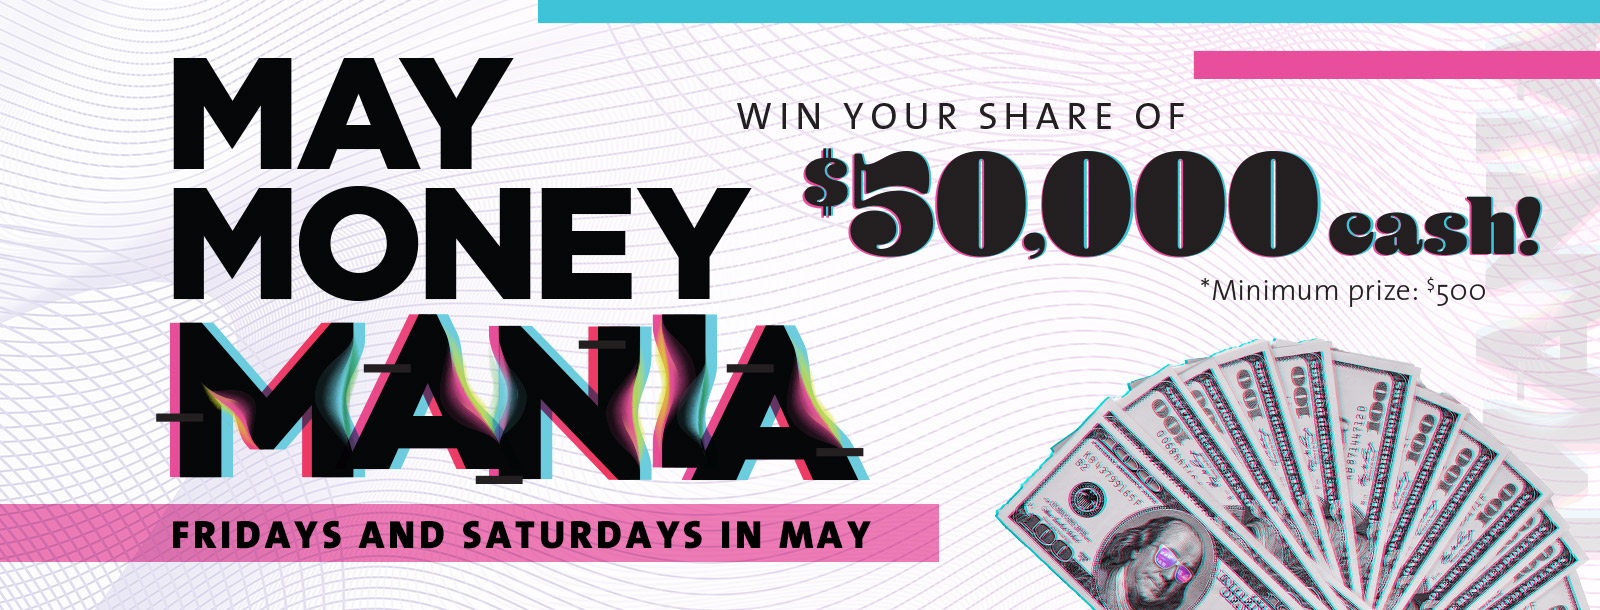 may money mania sioux city entertainment